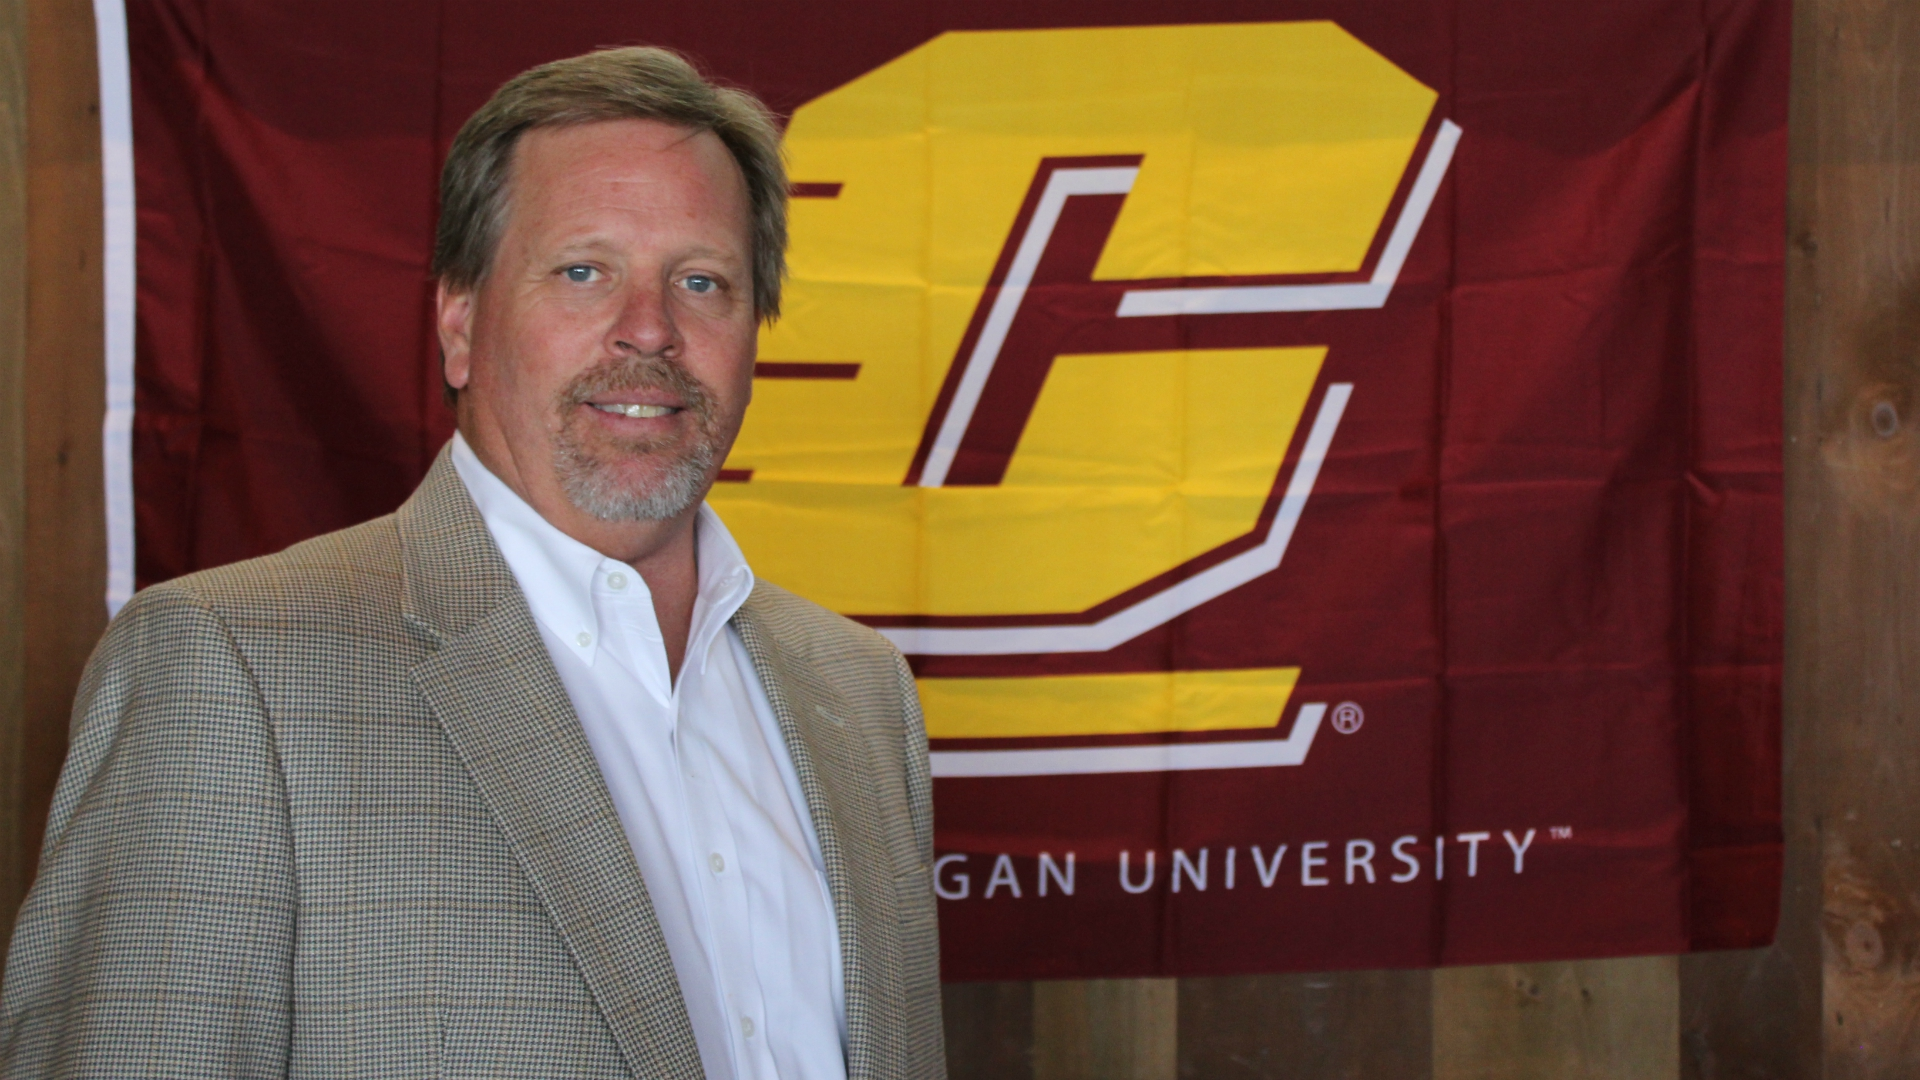 central michigan football coach jim mcelwain 060519_1559786205745.jpg.jpg